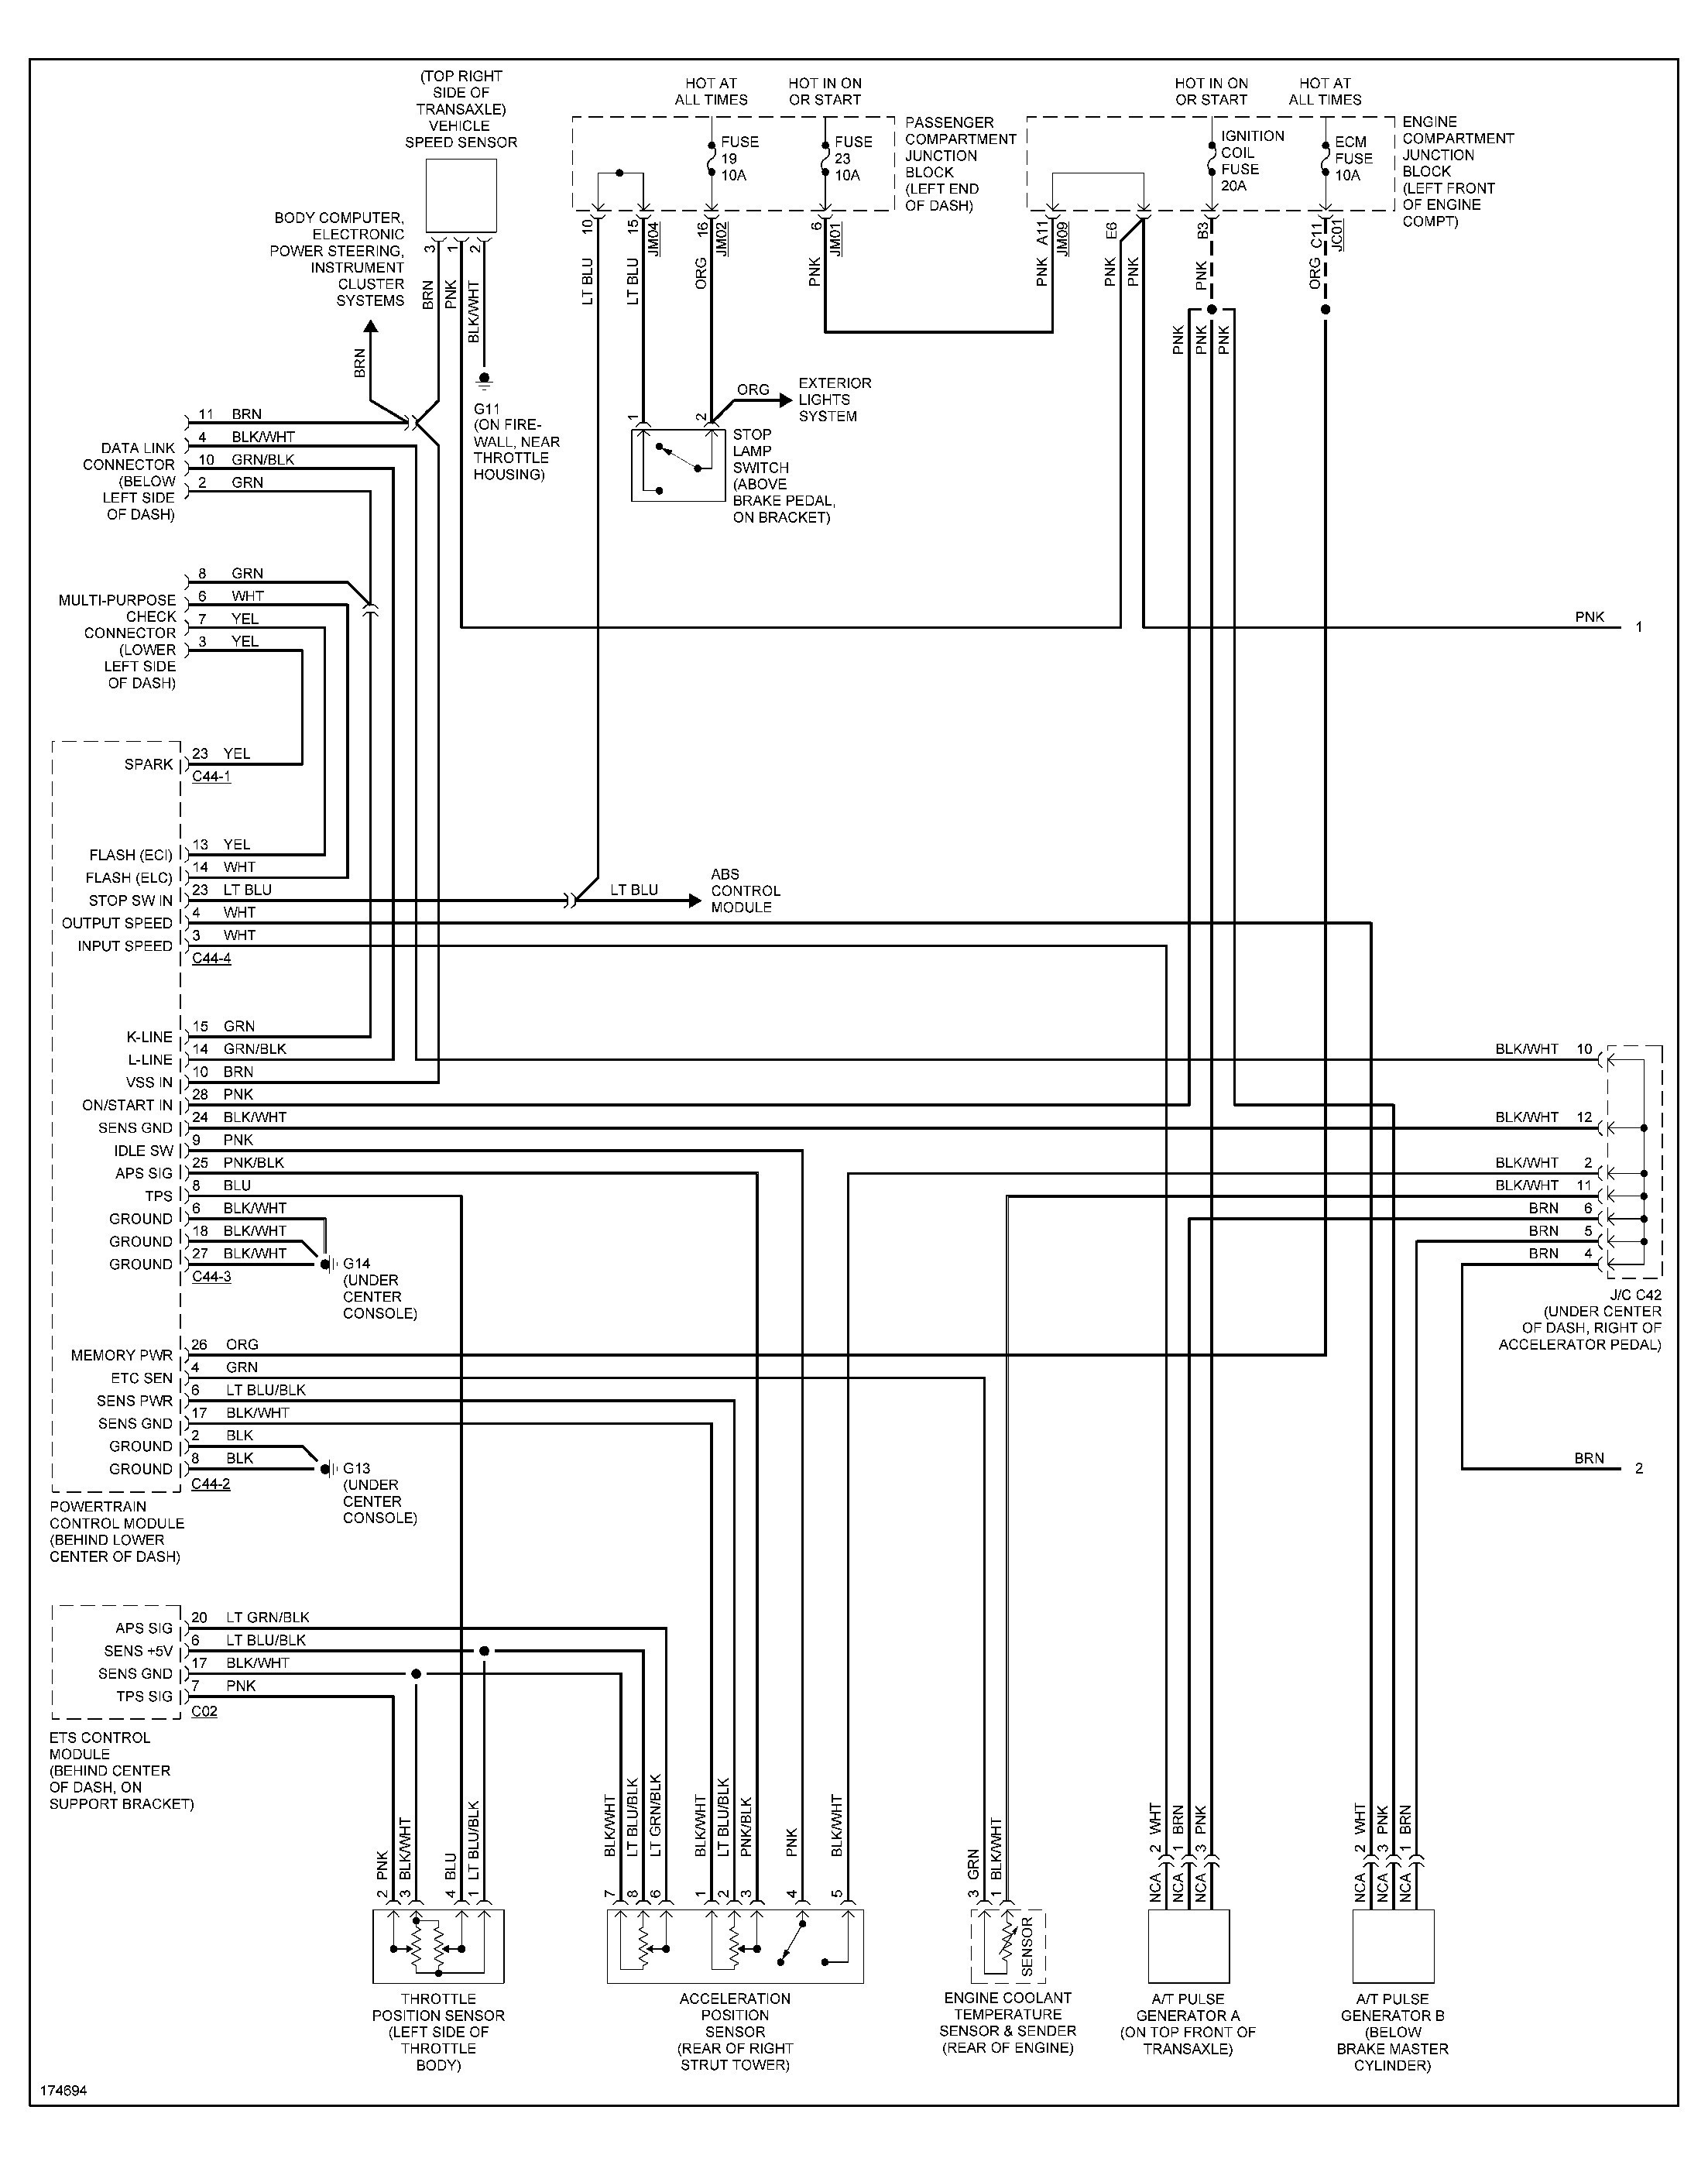 2003 Hyundai Elantra Stereo Wiring Diagram from mainetreasurechest.com